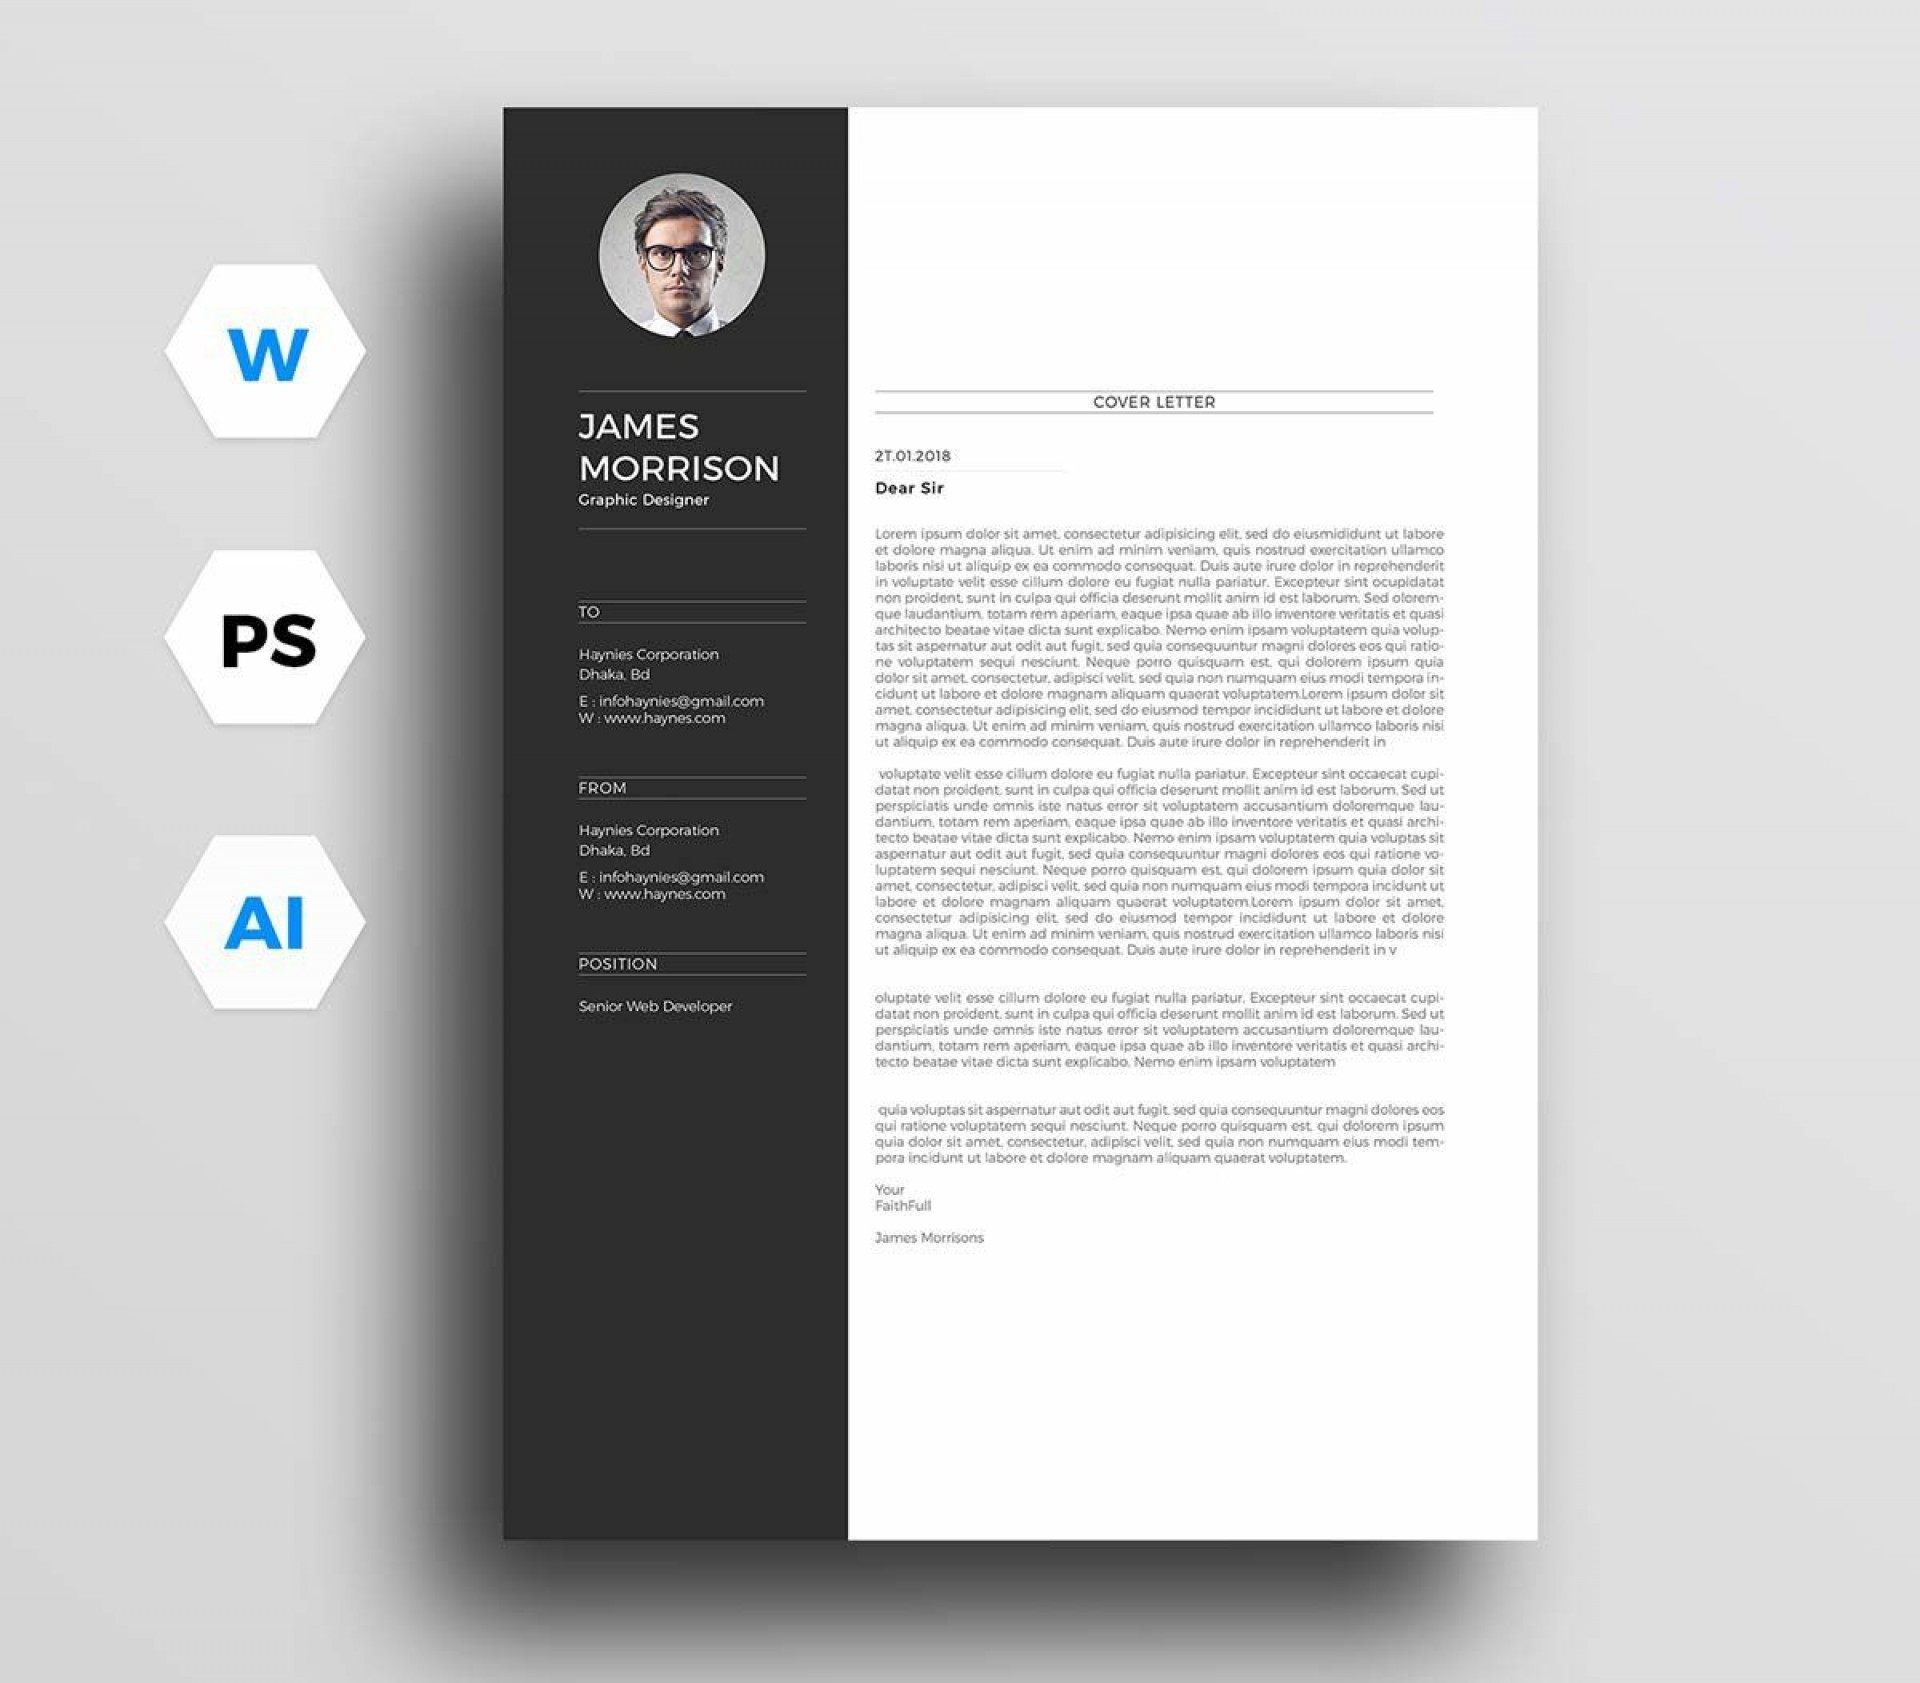 000 Phenomenal Cover Letter Free Template Idea  Download Word Doc1920